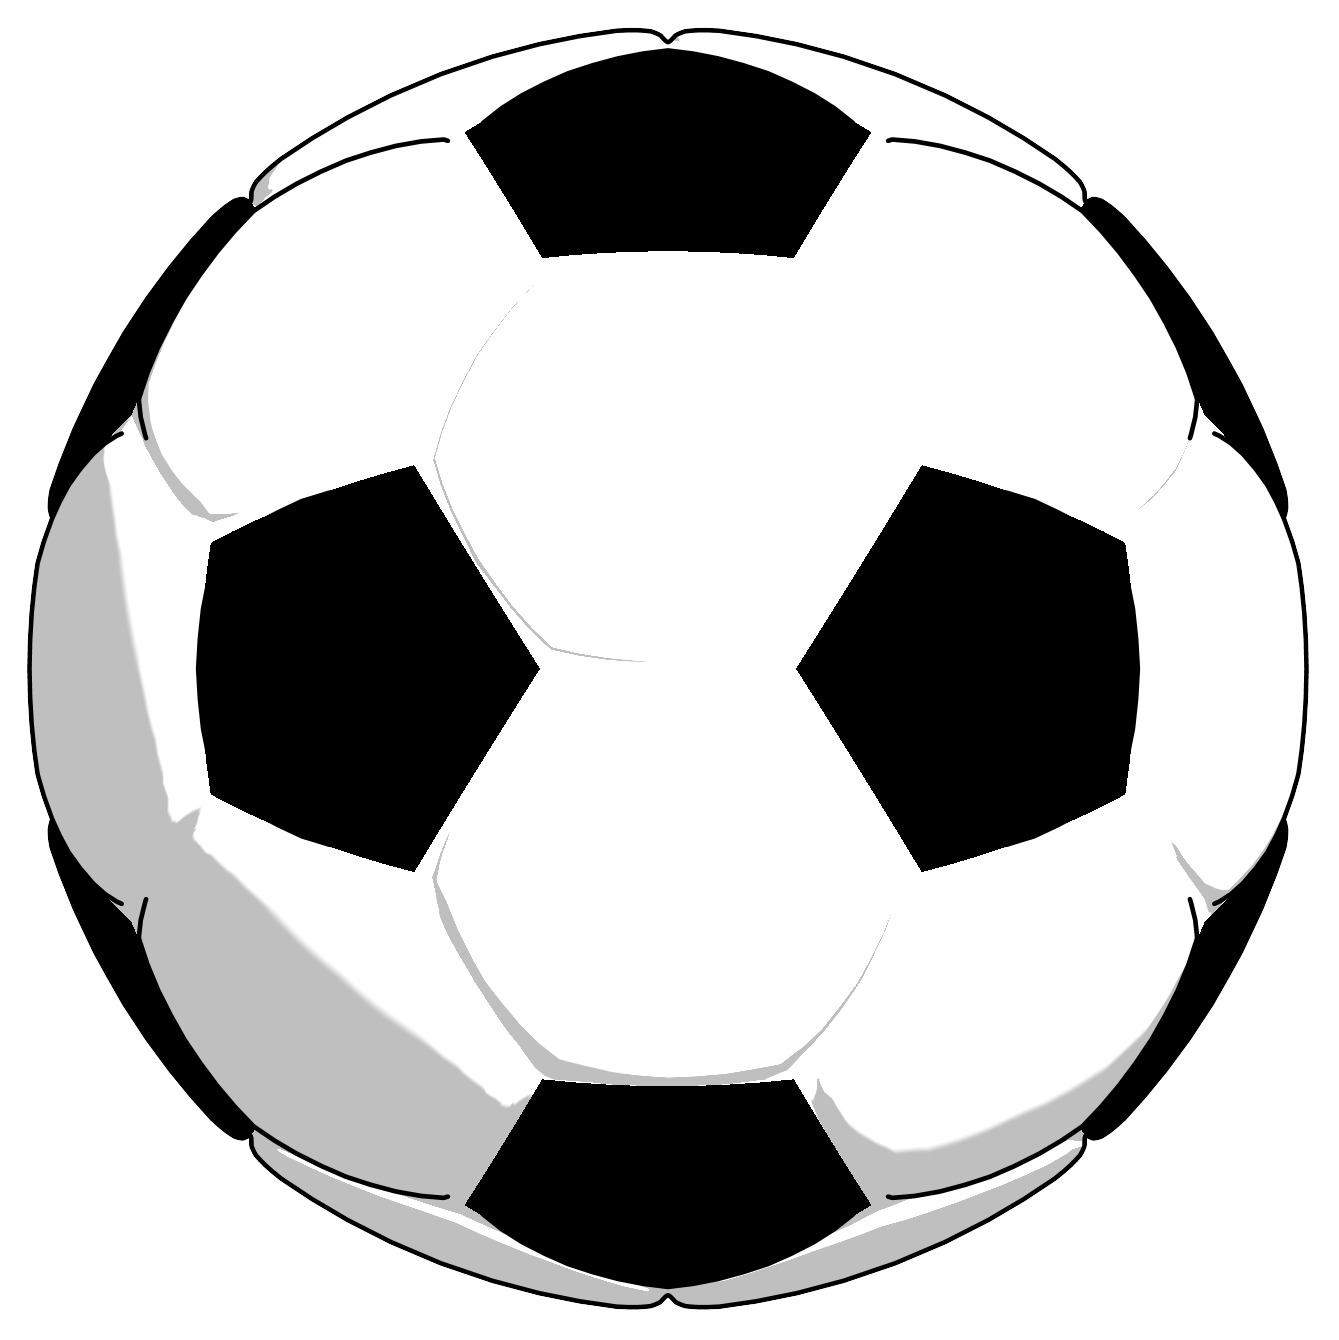 Box clipart soccer ball. Black white png picture